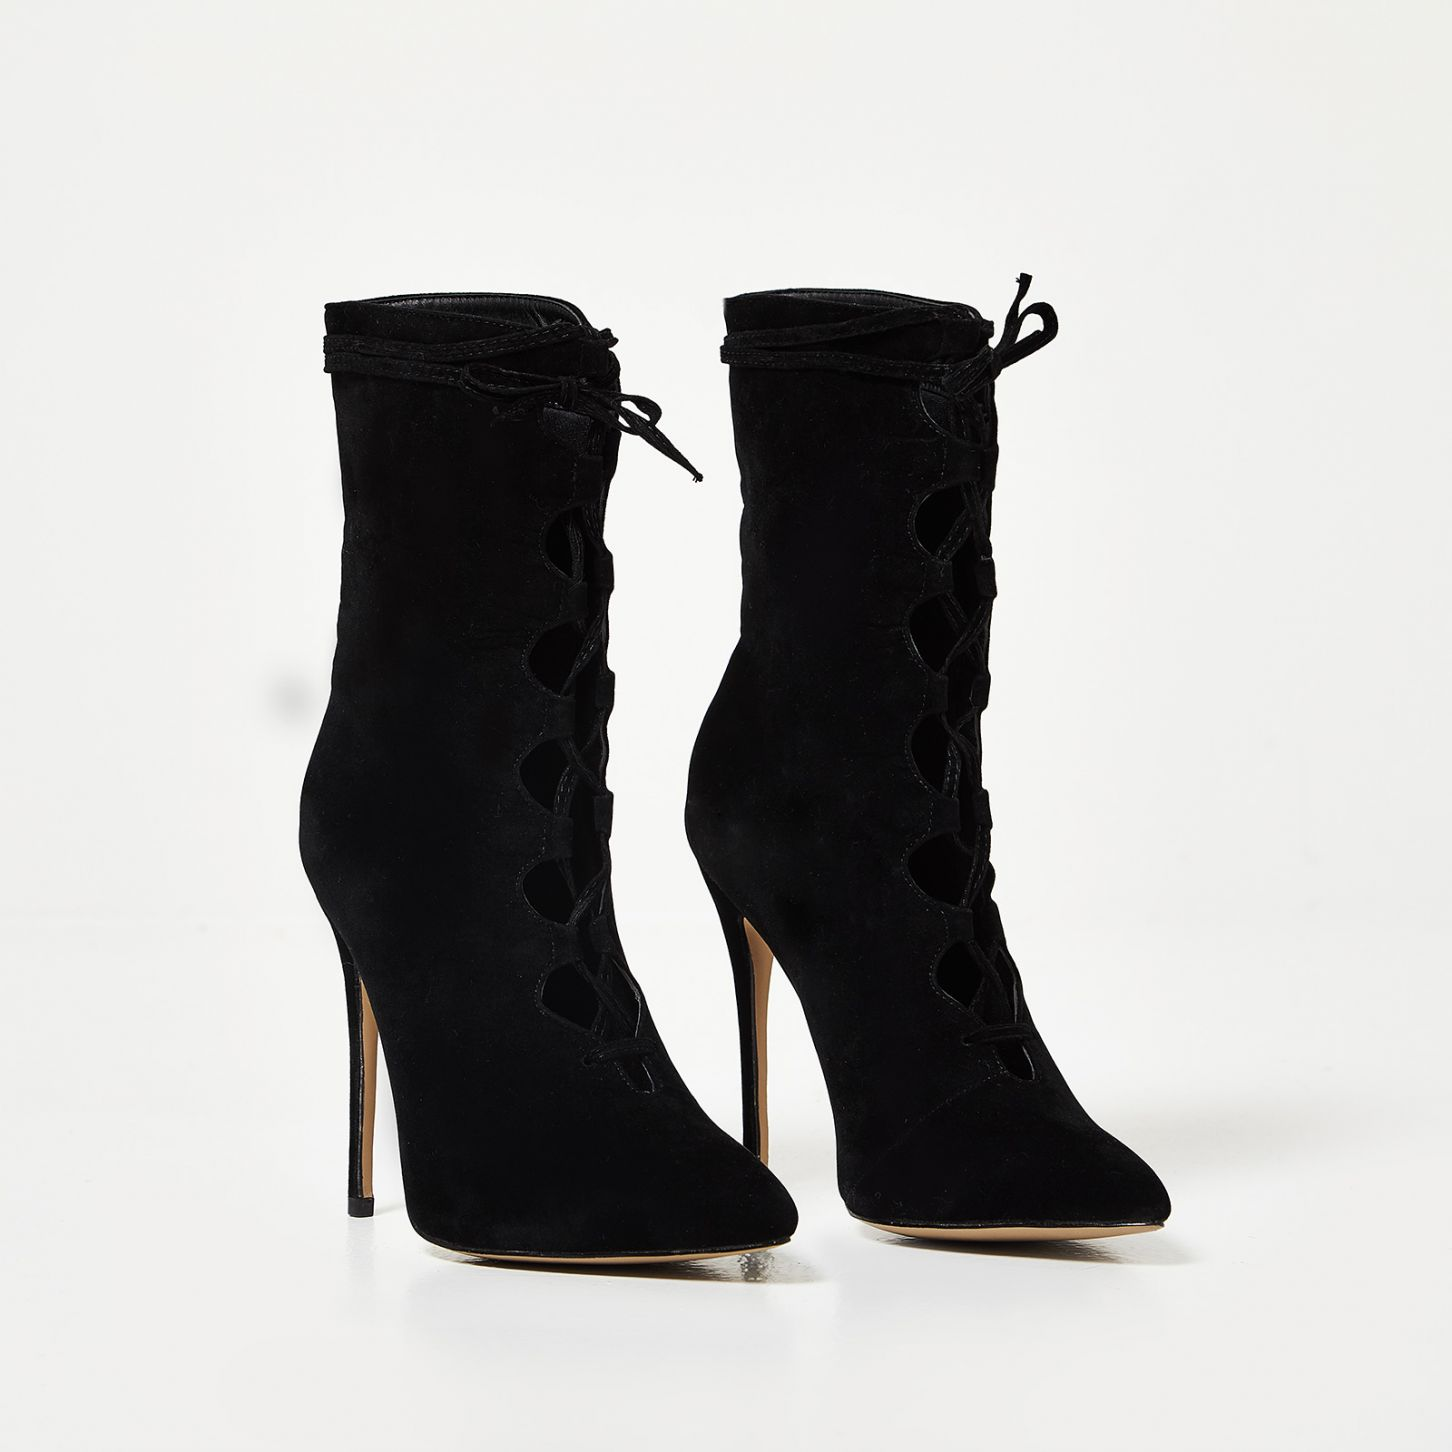 EGO BLACK LACE UP BOOTS